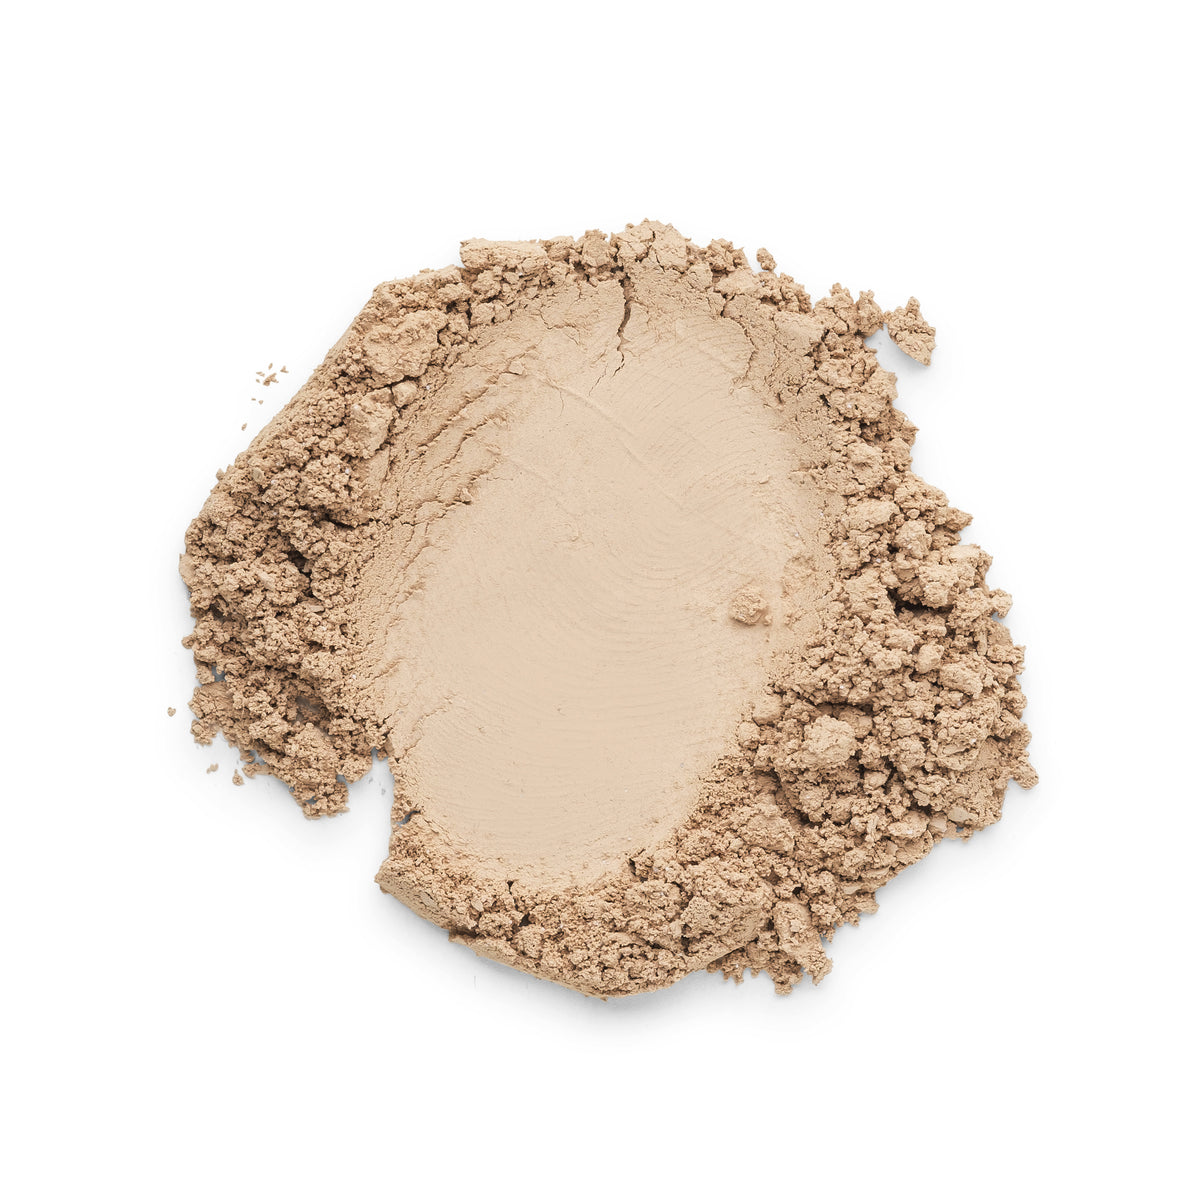 Ivadore 100% Mineral Loose Powder showing colour swatch. A warm beige colour suitable for olive or Mediterranean skin types